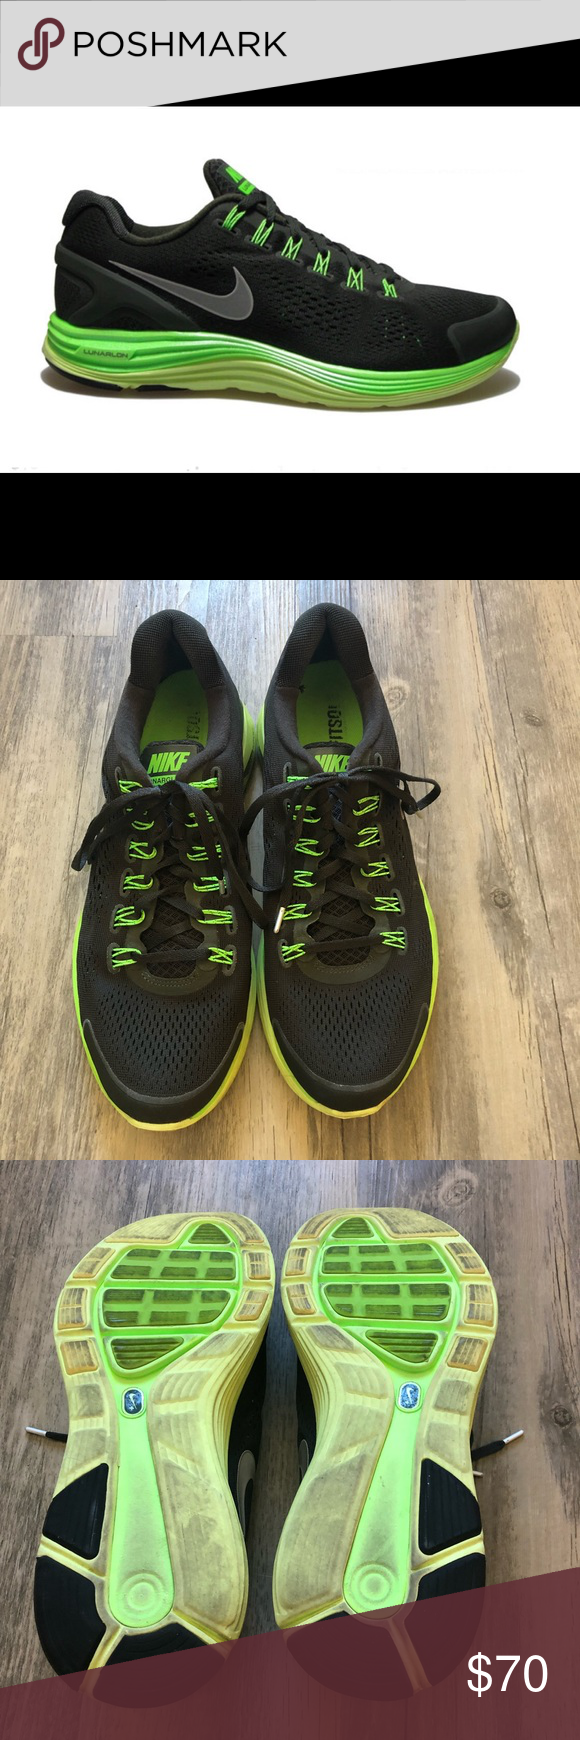 7e8fd07b4e6 Nike LunarGlide4 Men s Running Shoes Nike LunarGlide4 Men s Running Shoes  Size 12 Color  Black   Neon Green Nike+ enabled Amazing fit and support on  an ...